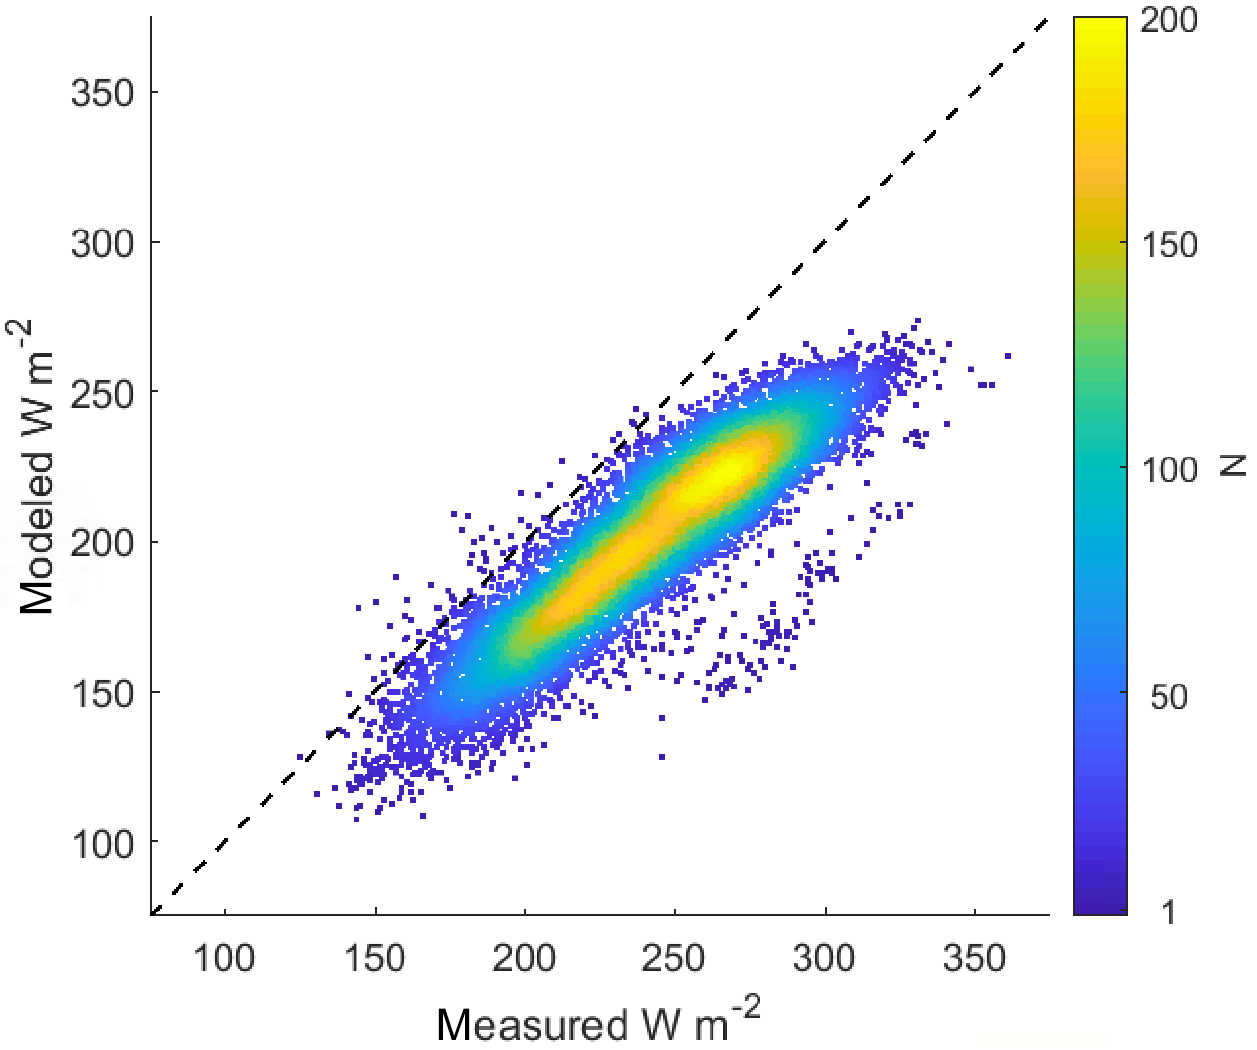 ESSD - Hourly mass and snow energy balance measurements from